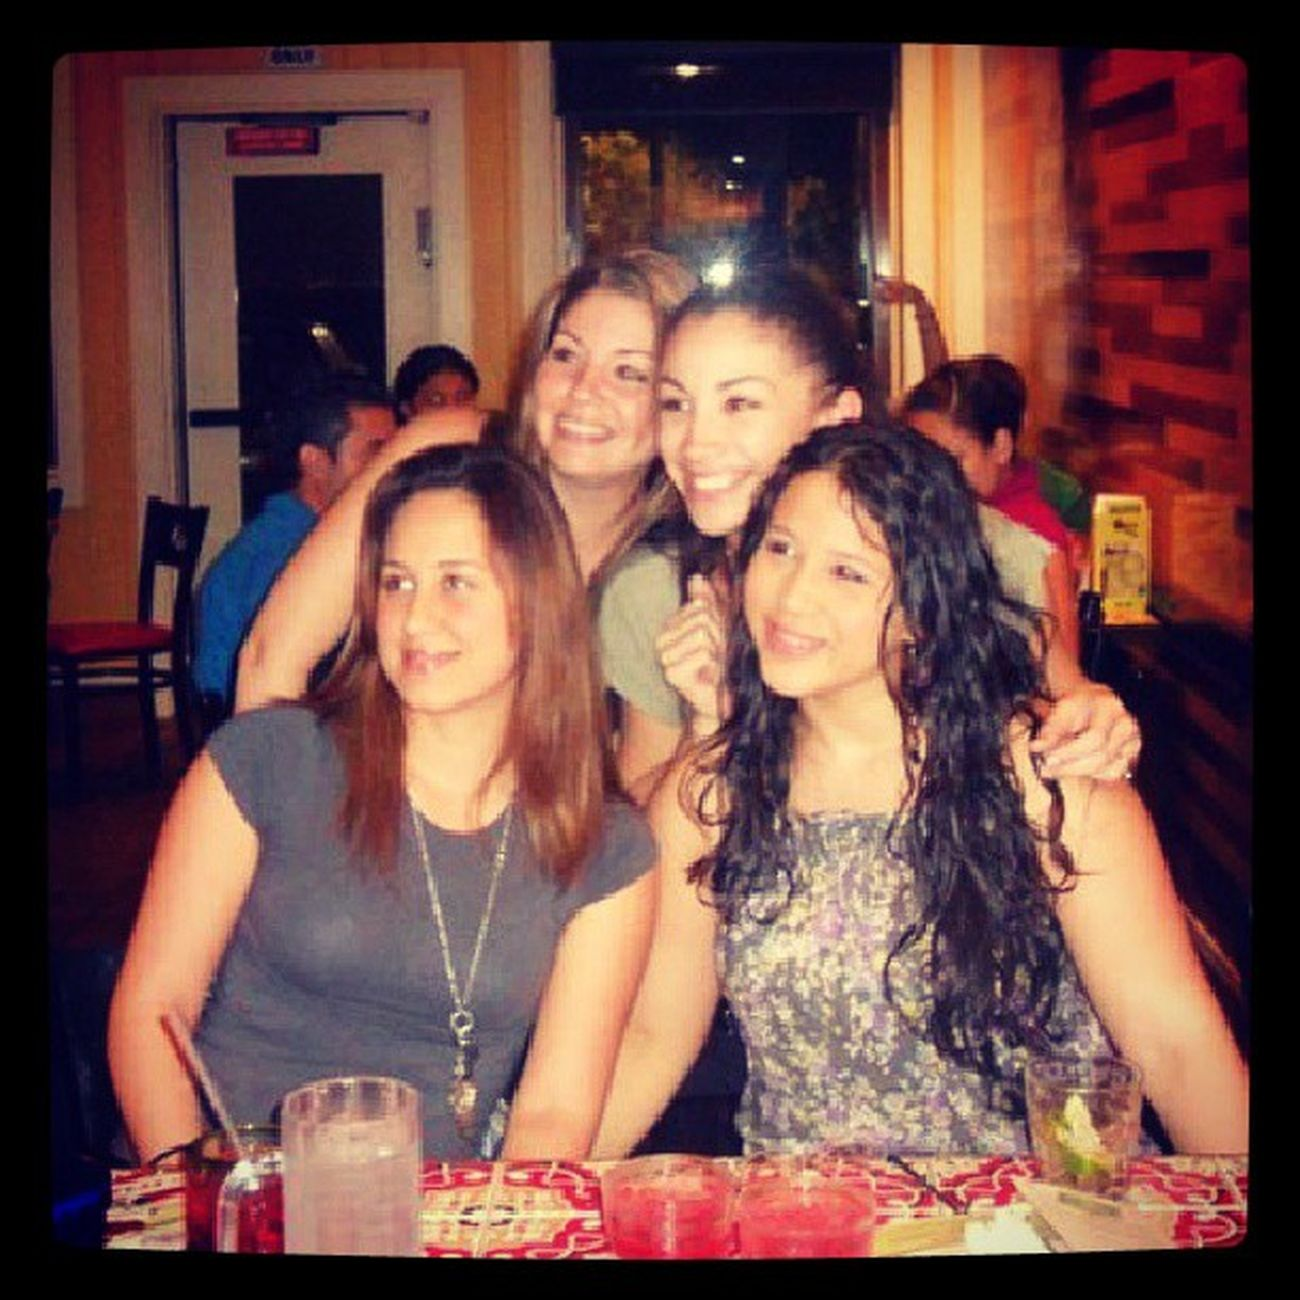 Tbt... lol @pcoss we were holding hands lol Weird Ulovedme Chilis !! @eriika0527 @beatrizz